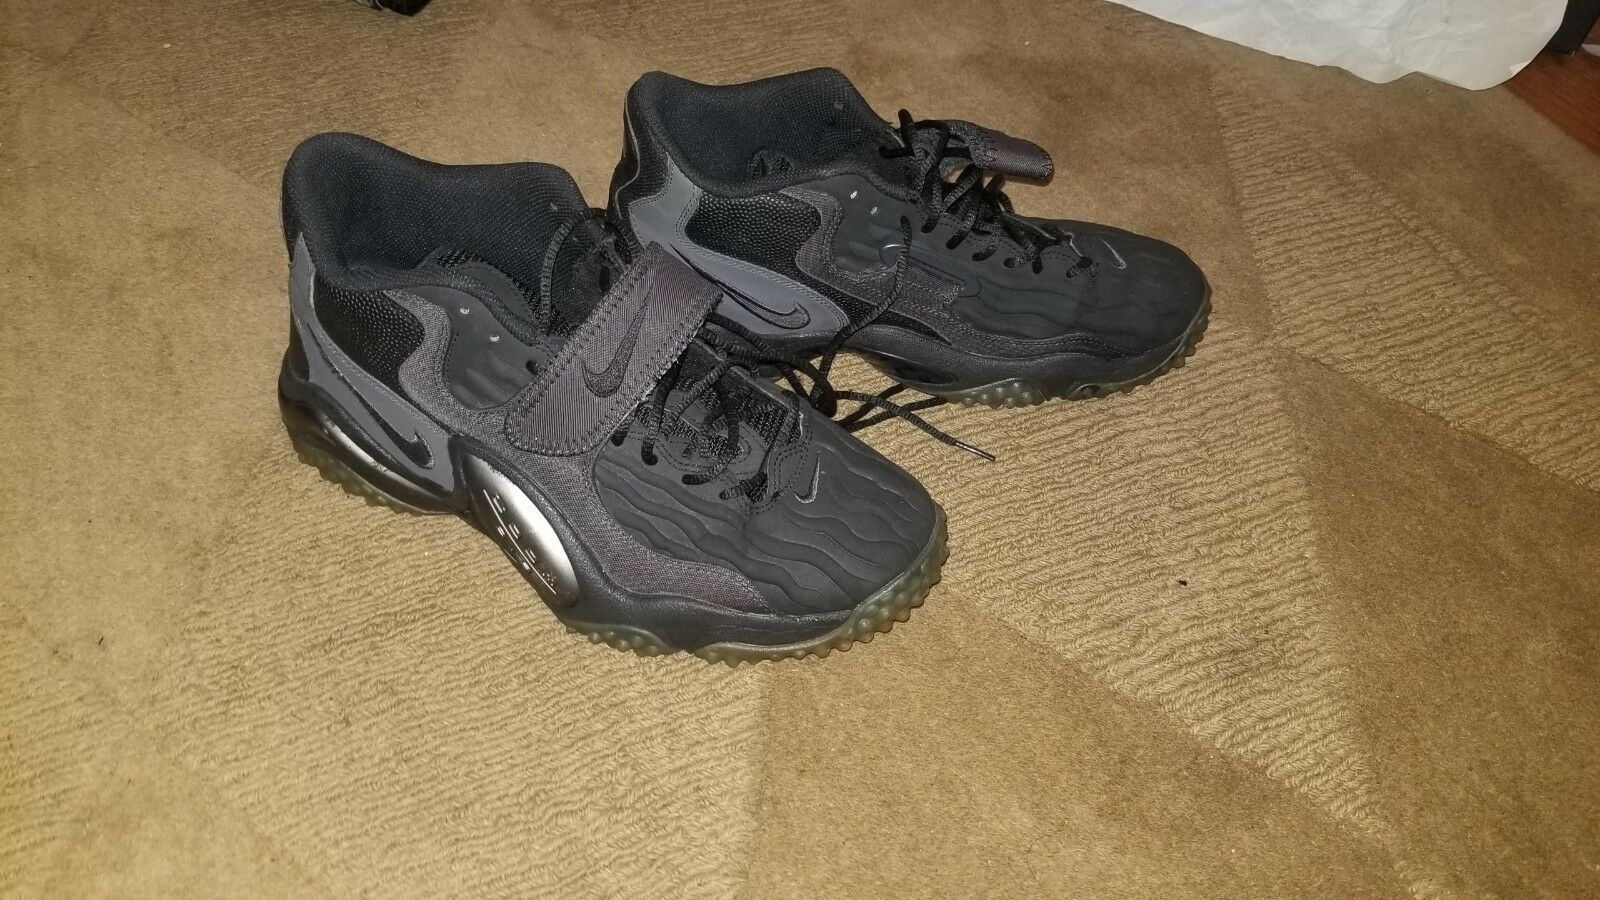 9c1a52af43 Air zoom black on black. Used but in great condition. No creases. New NIKE  Air Max Motion Triple Black Mens Casual Athletic shoes al sizes